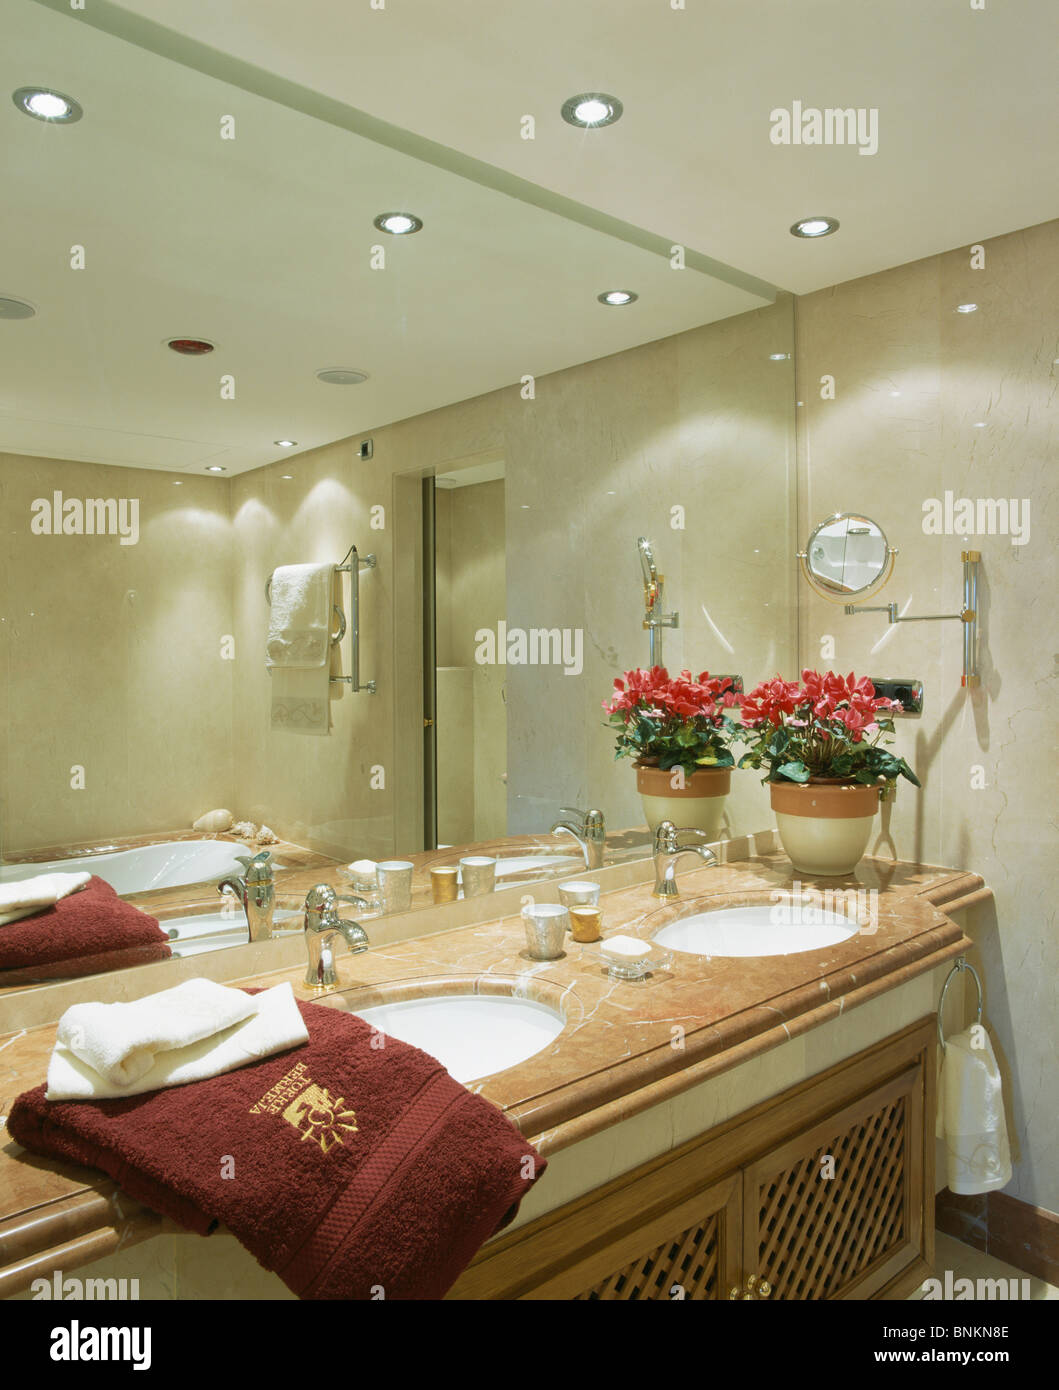 Mirrored wall above under-set basins in marble-topped vanity unit in modern bathroom with recessed lighting - Stock Image